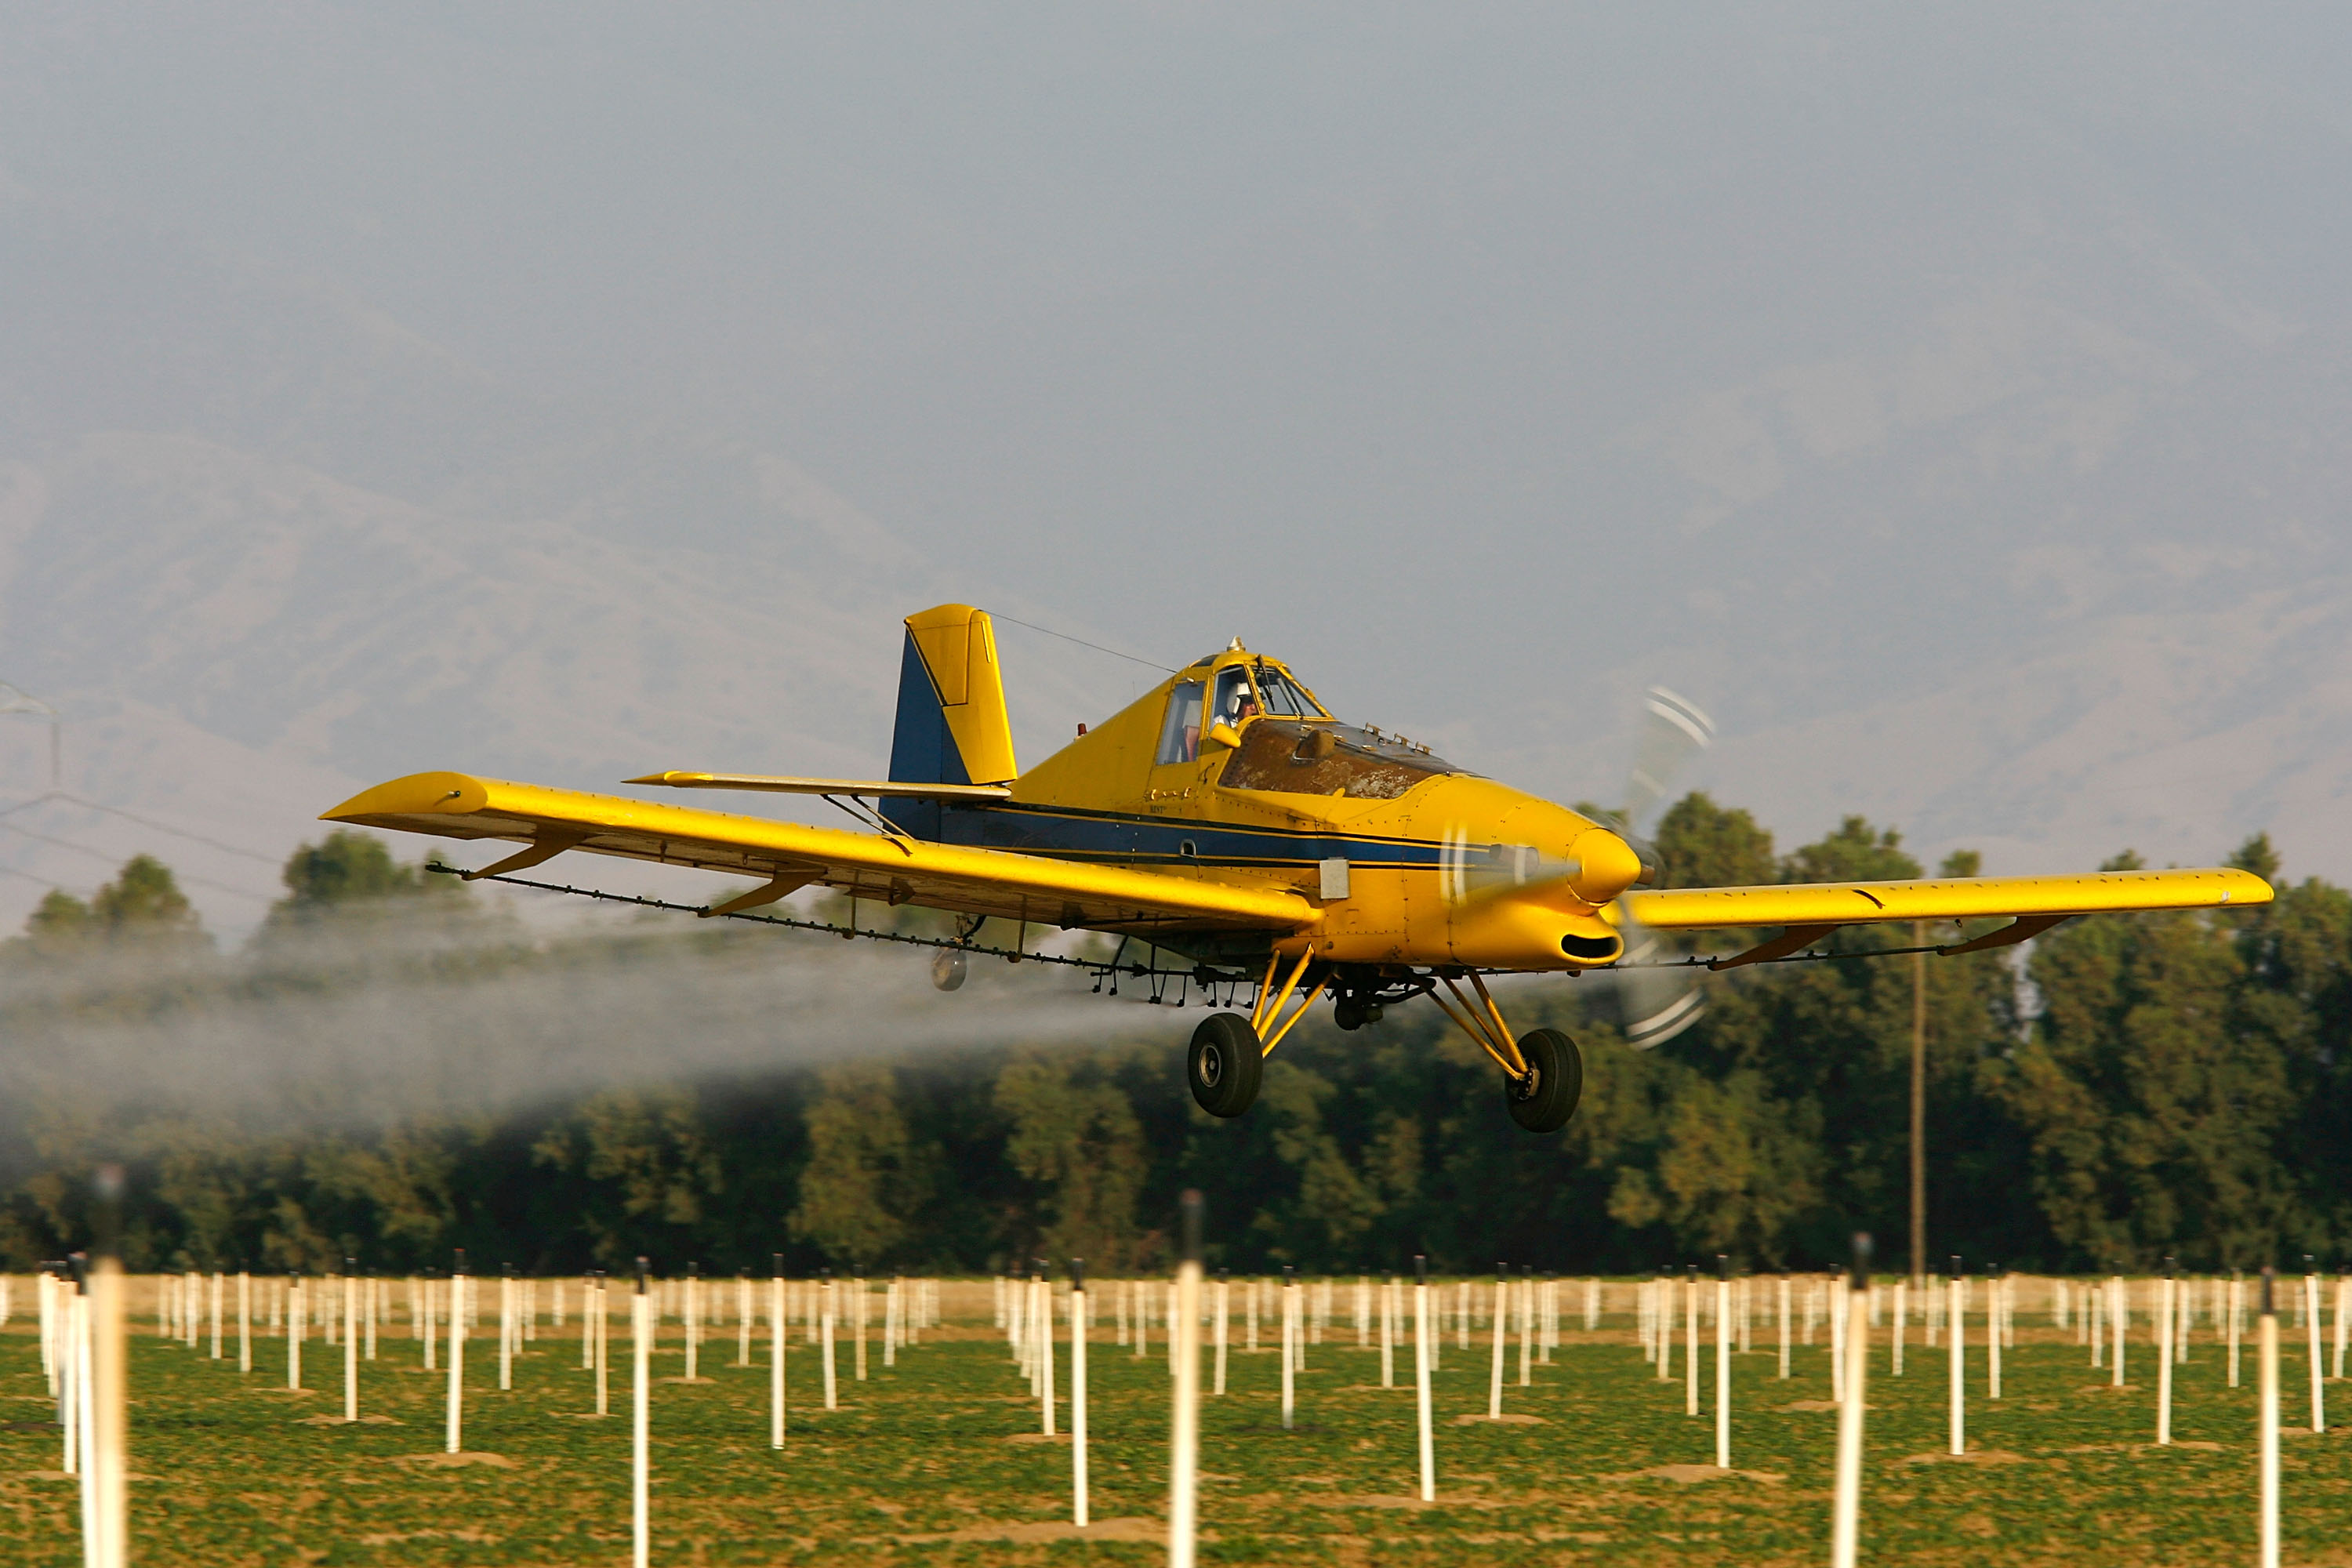 A crop duster airplane sprays Lanate, a powerful organophosphate pesticide banned in most European countries, on California fields in 2008.